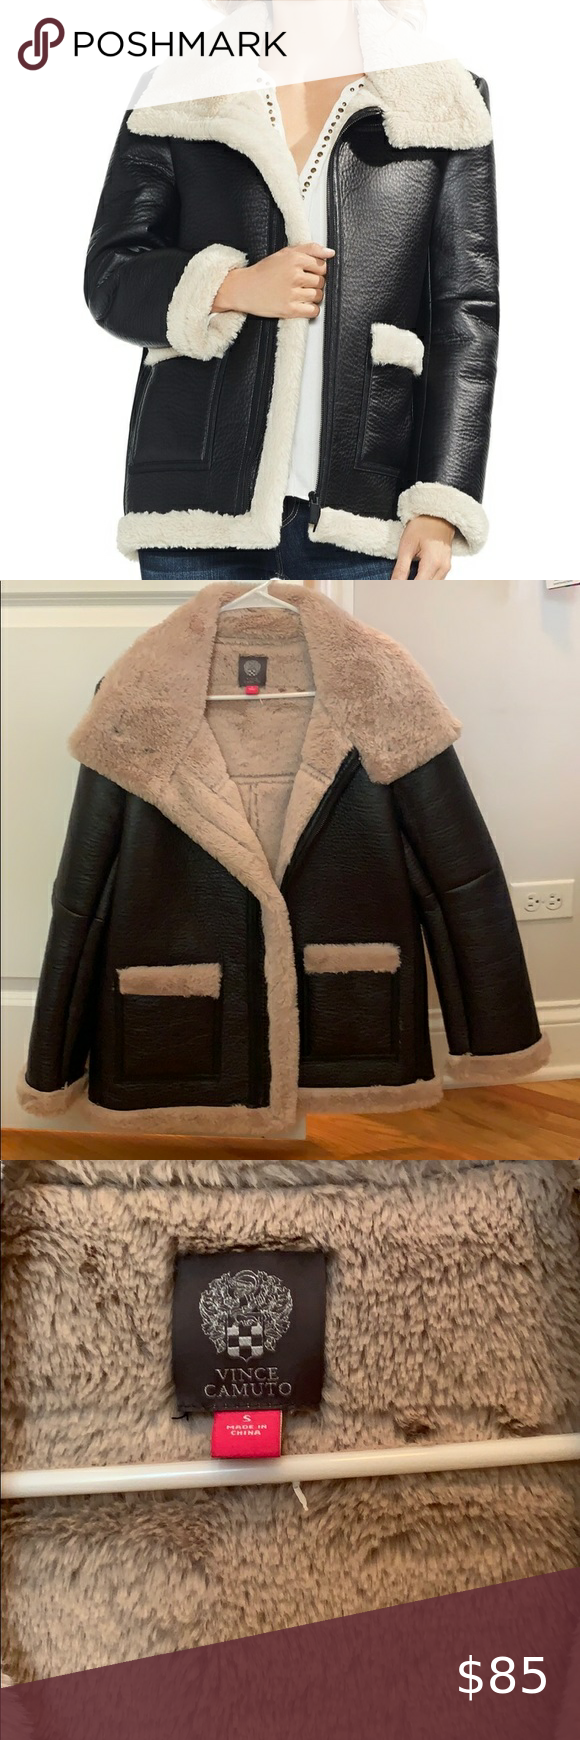 Shearling Lined Vince Camuto Leather Jacket Coat Shearling Jacket Coats Jackets Clothes Design [ 1740 x 580 Pixel ]